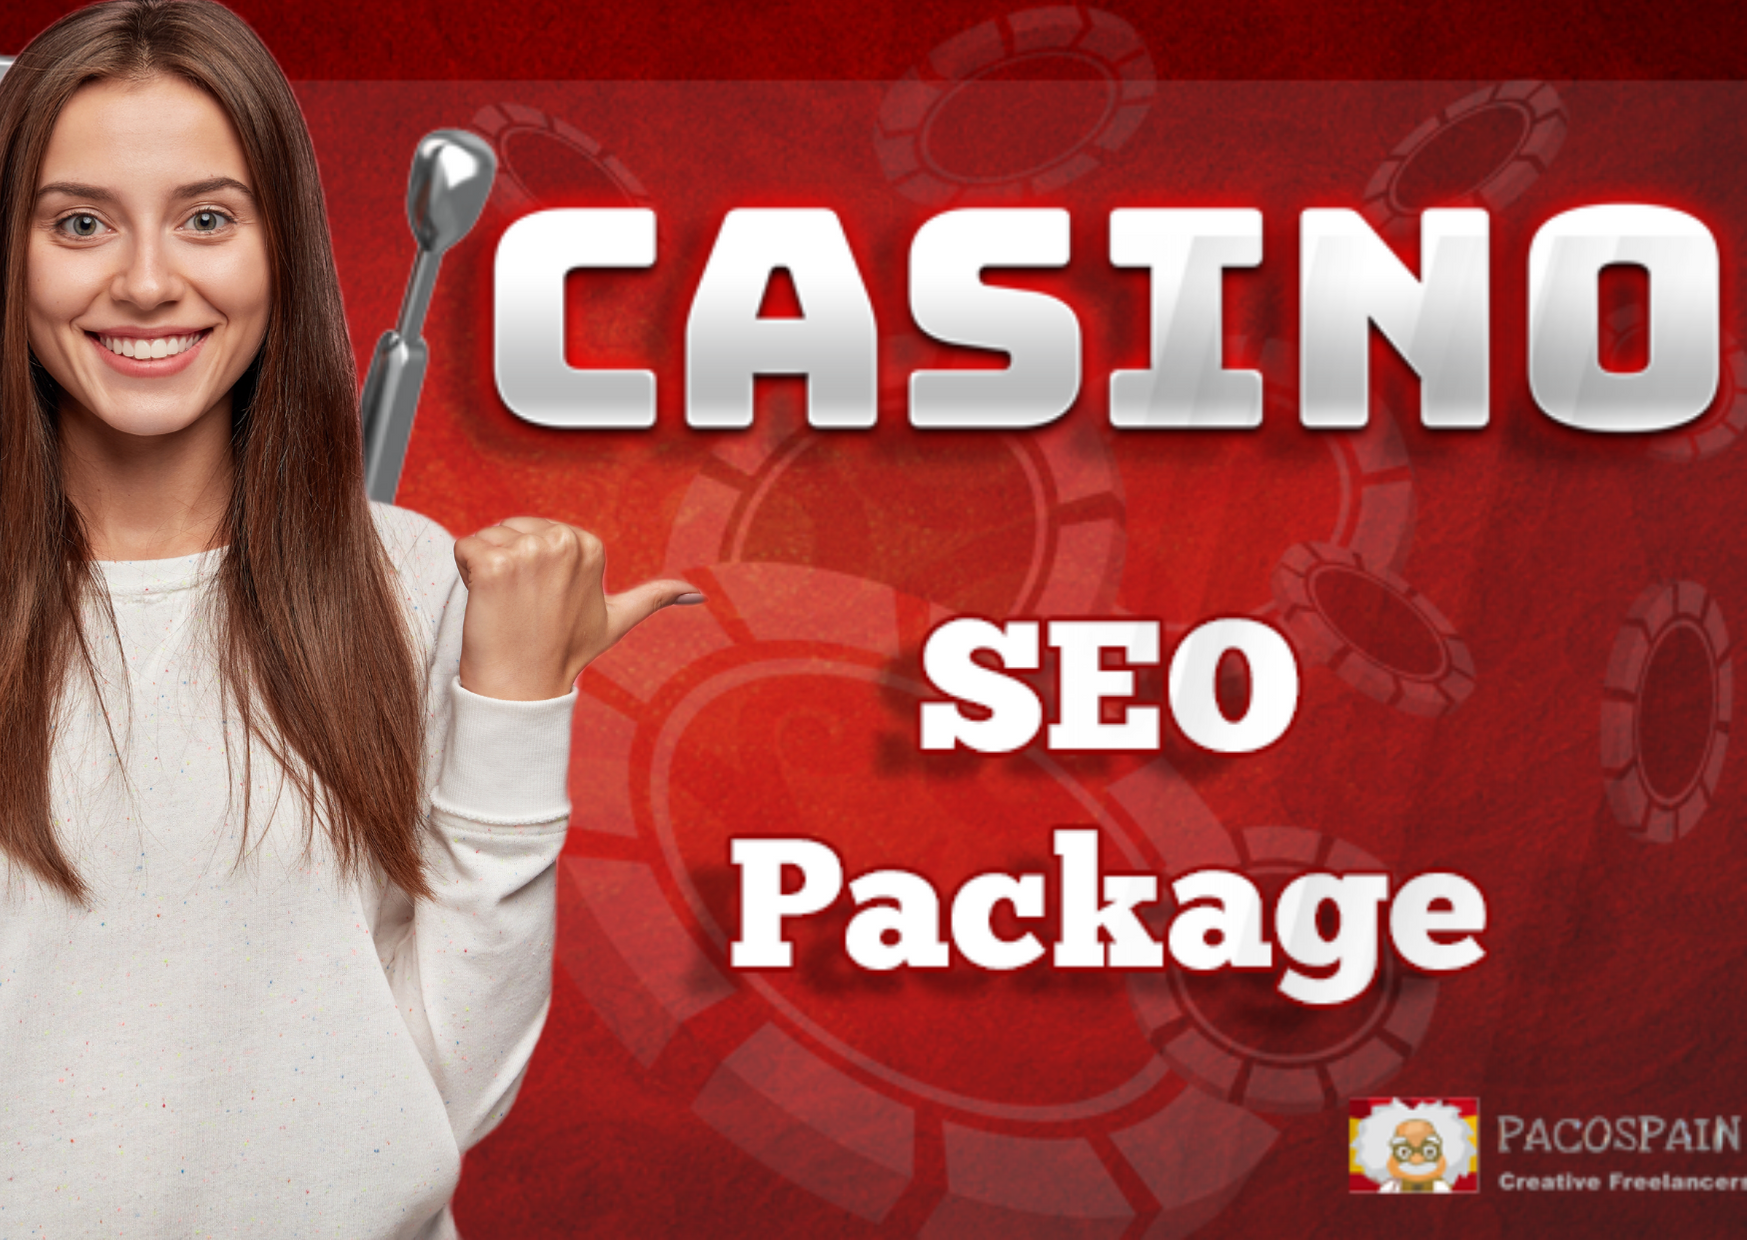 Get Ranked With This SEO Package For Casino Or Gambling Websites